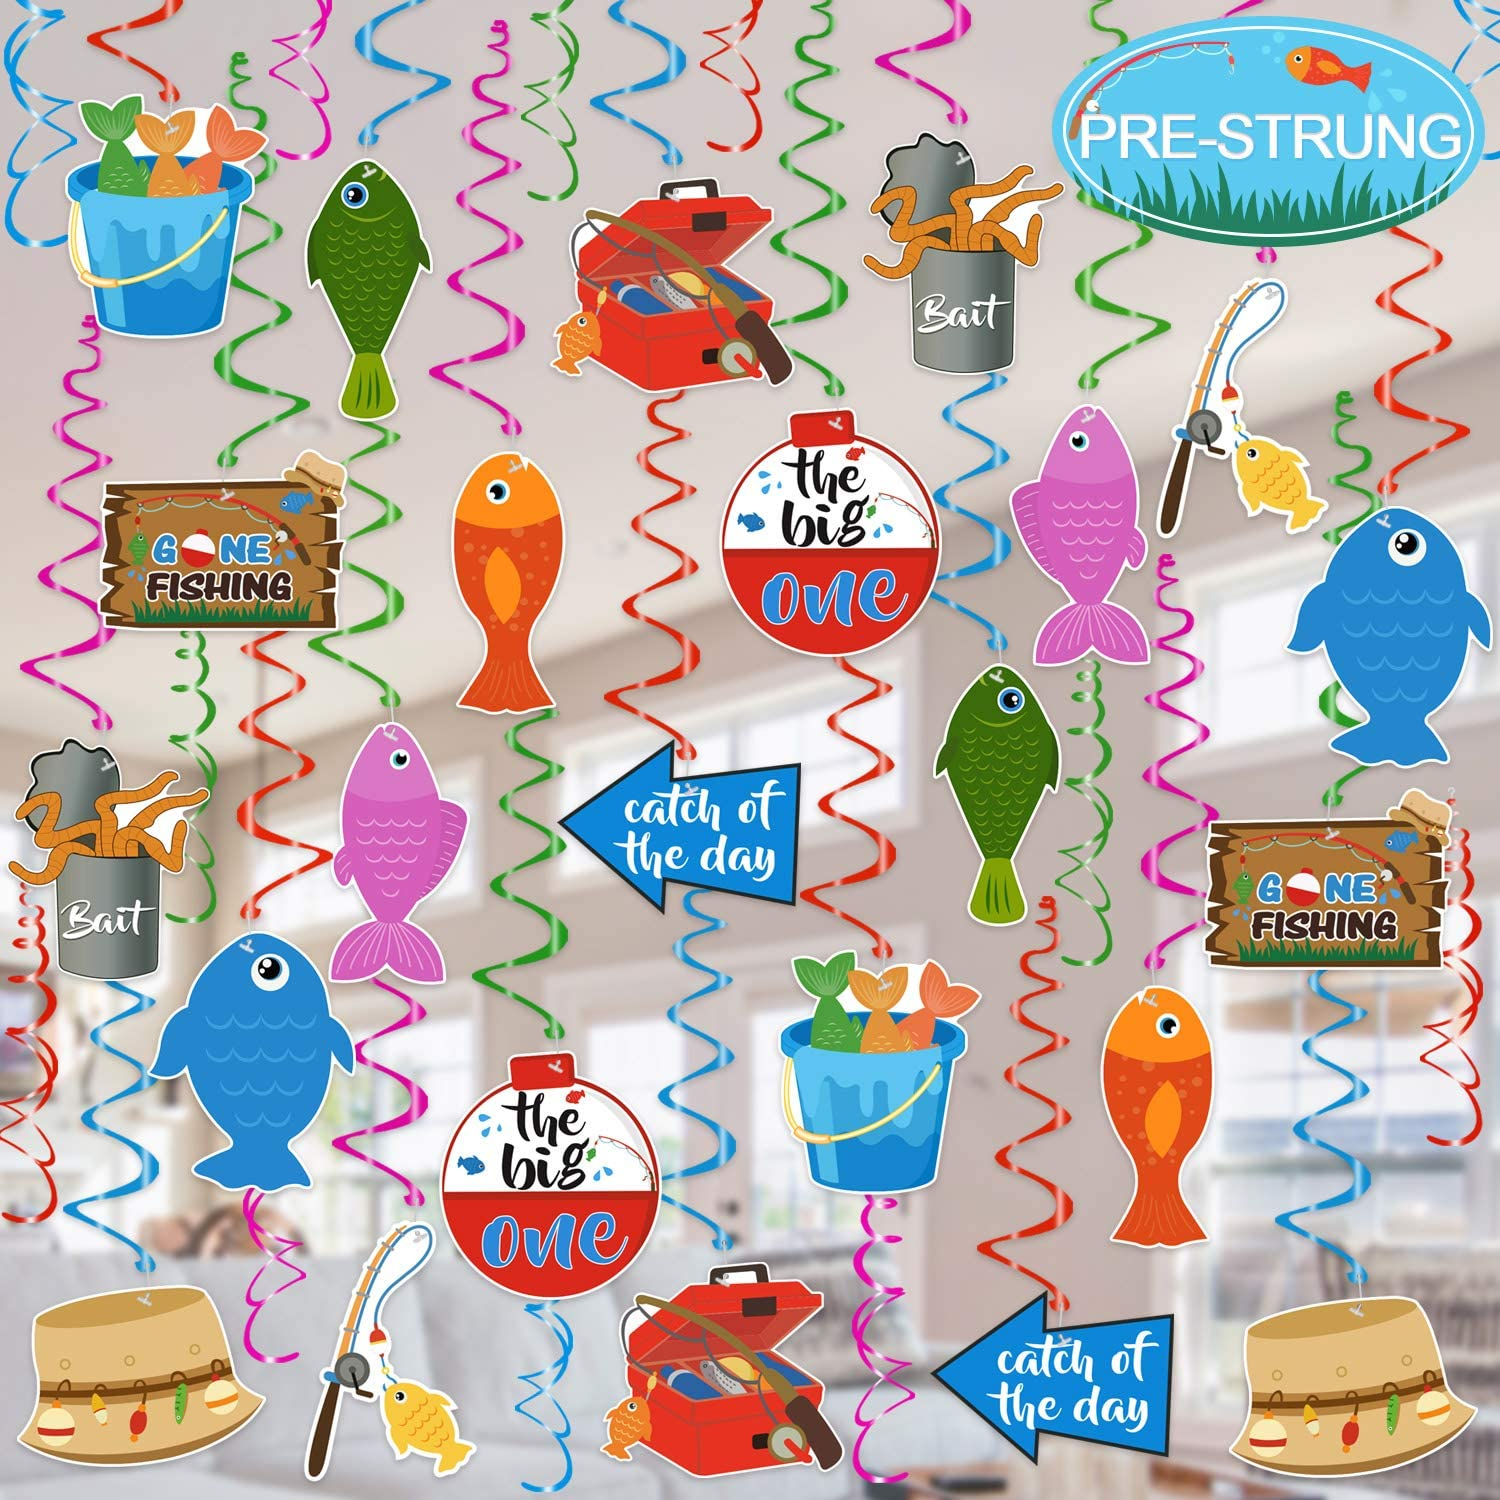 Tifeson Gone Fishing Party Swirls - 36Pcs Fishing 1st Birthday Party Deocrations Swirls - Little Fisherman Birthday, O-fish-ally One Party, The Big One Fishing Party Decor